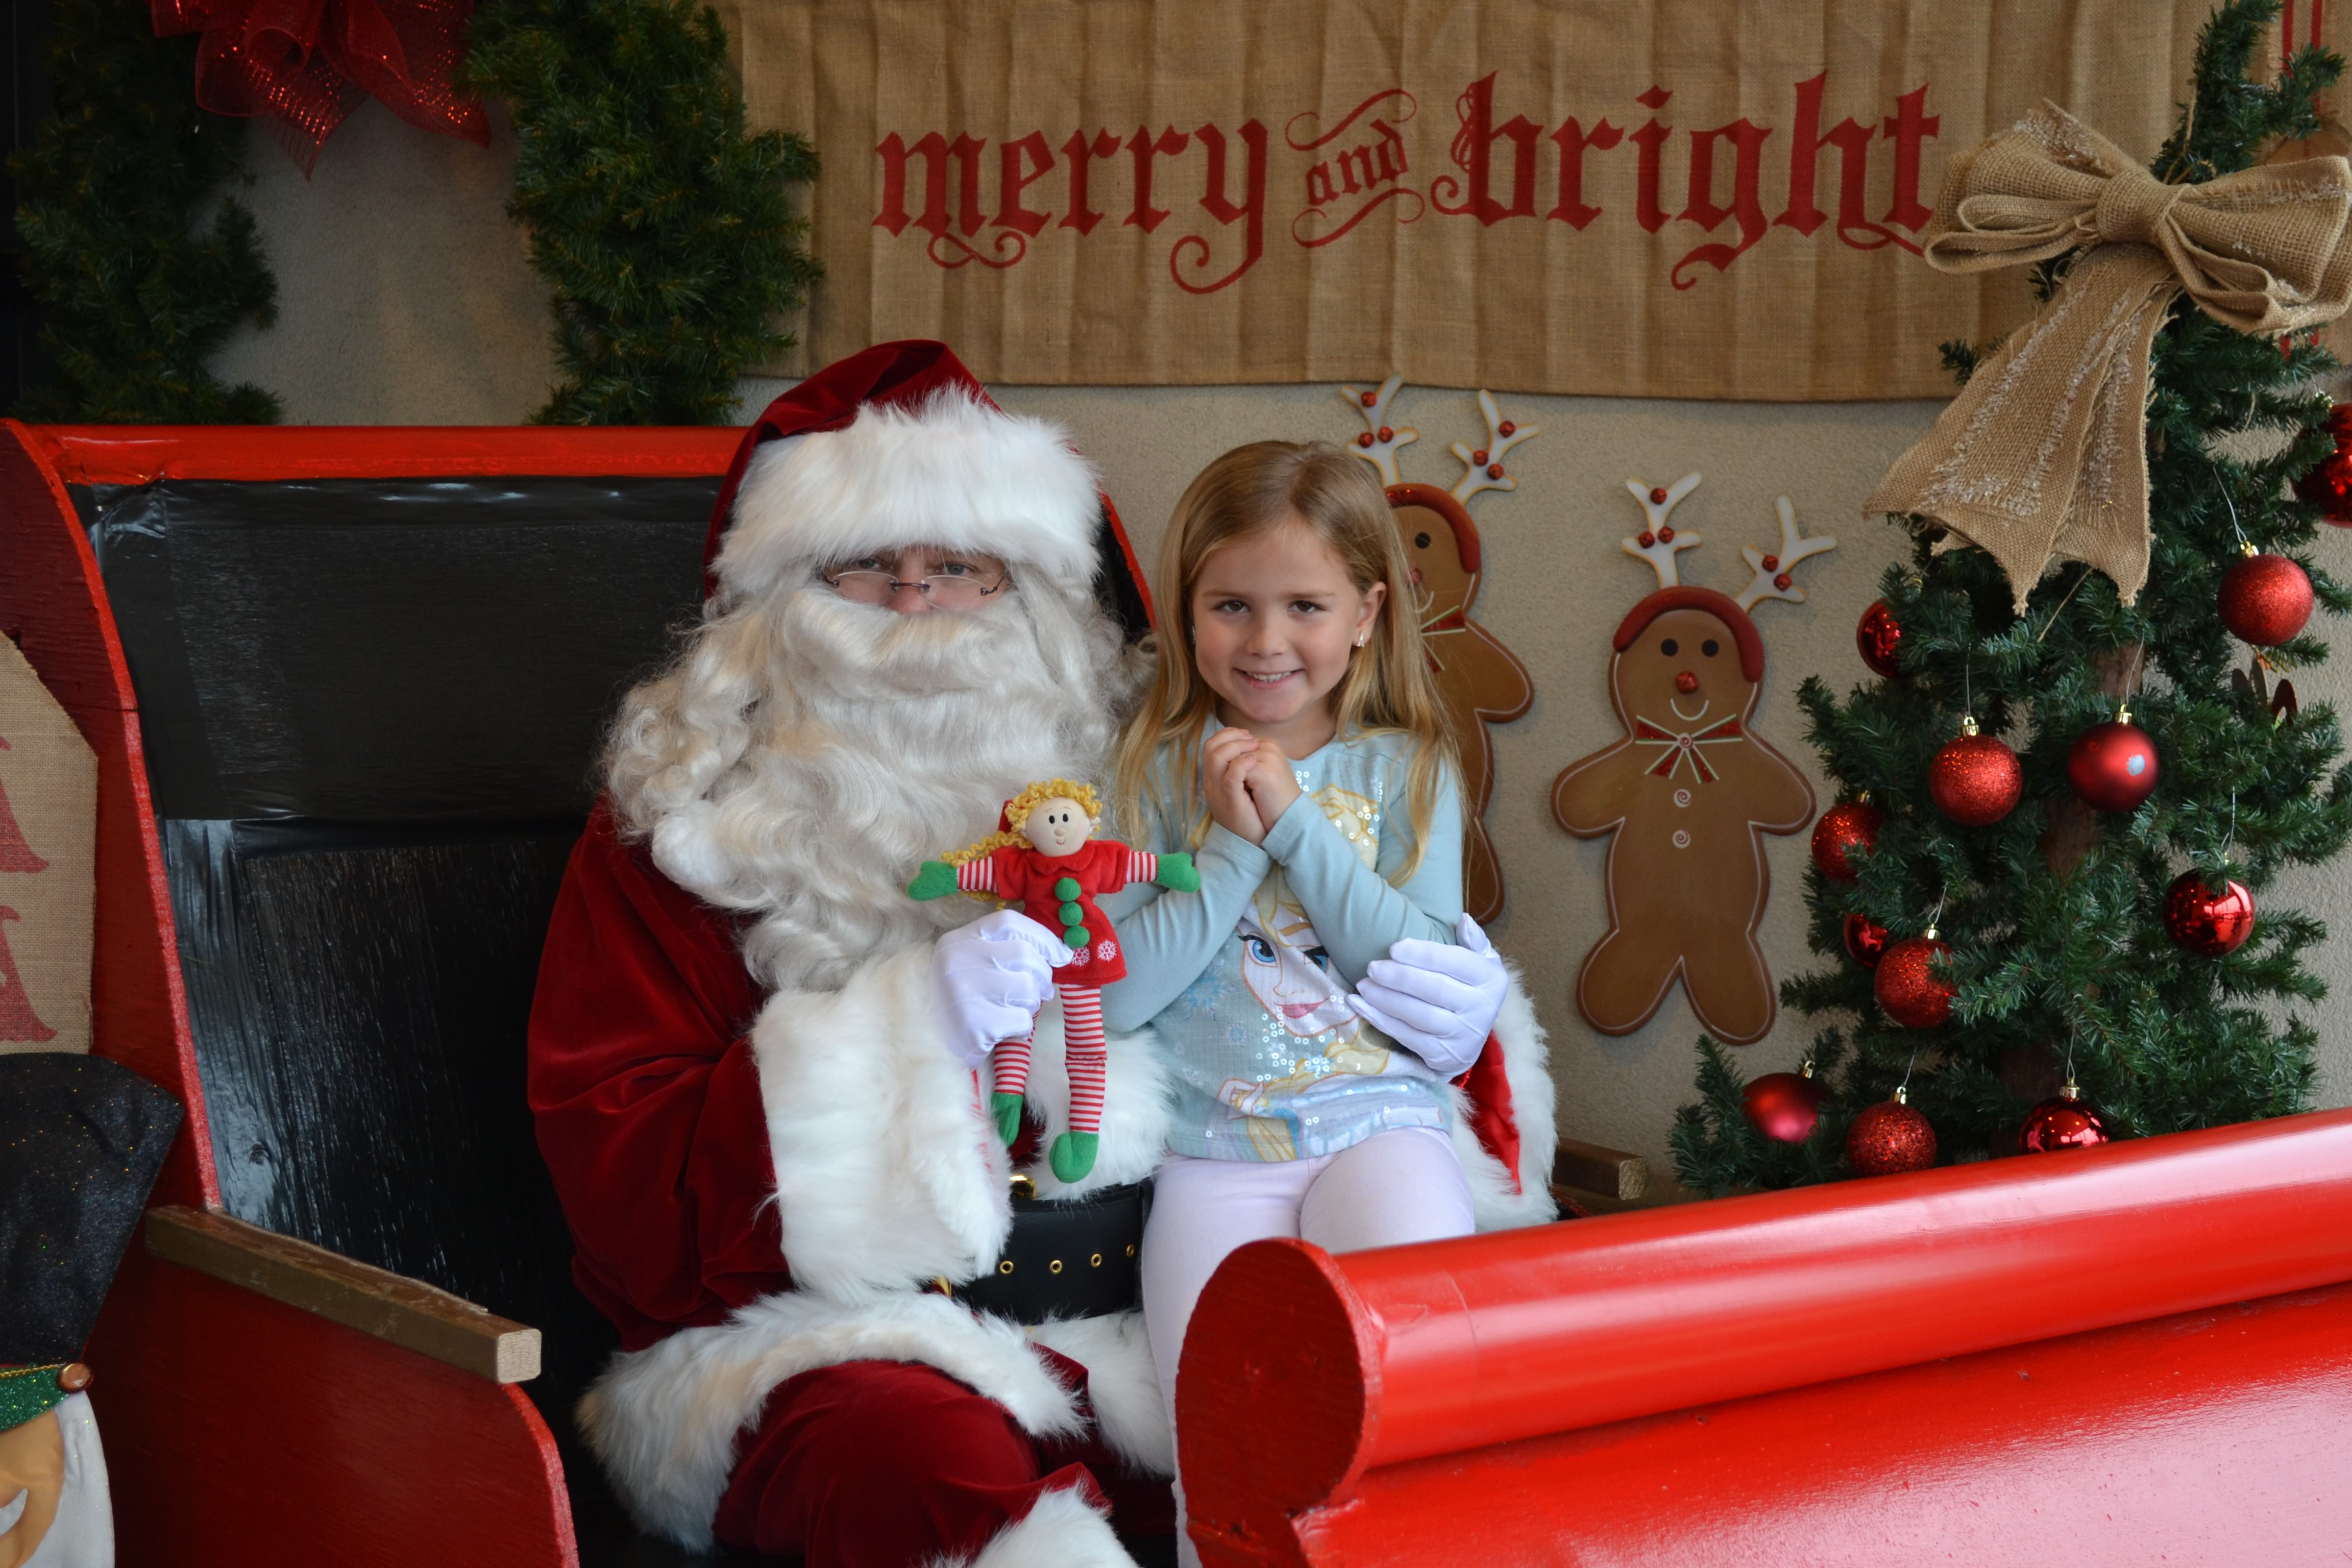 Family-owned pharmacy offers community support, holiday fun